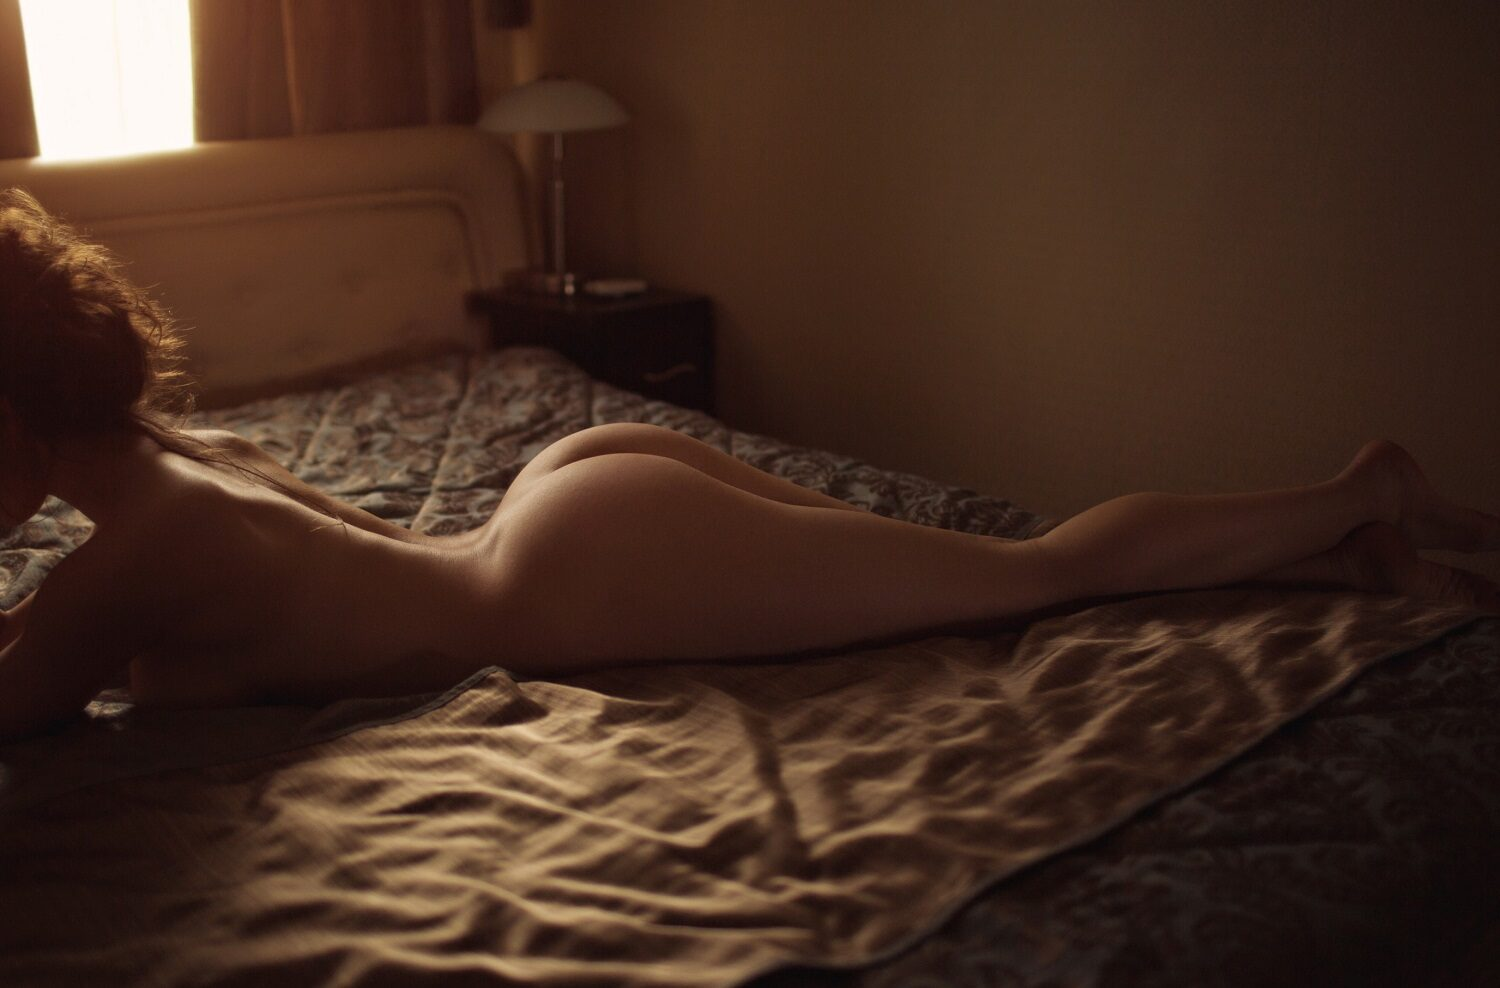 sensual woman laying on bed